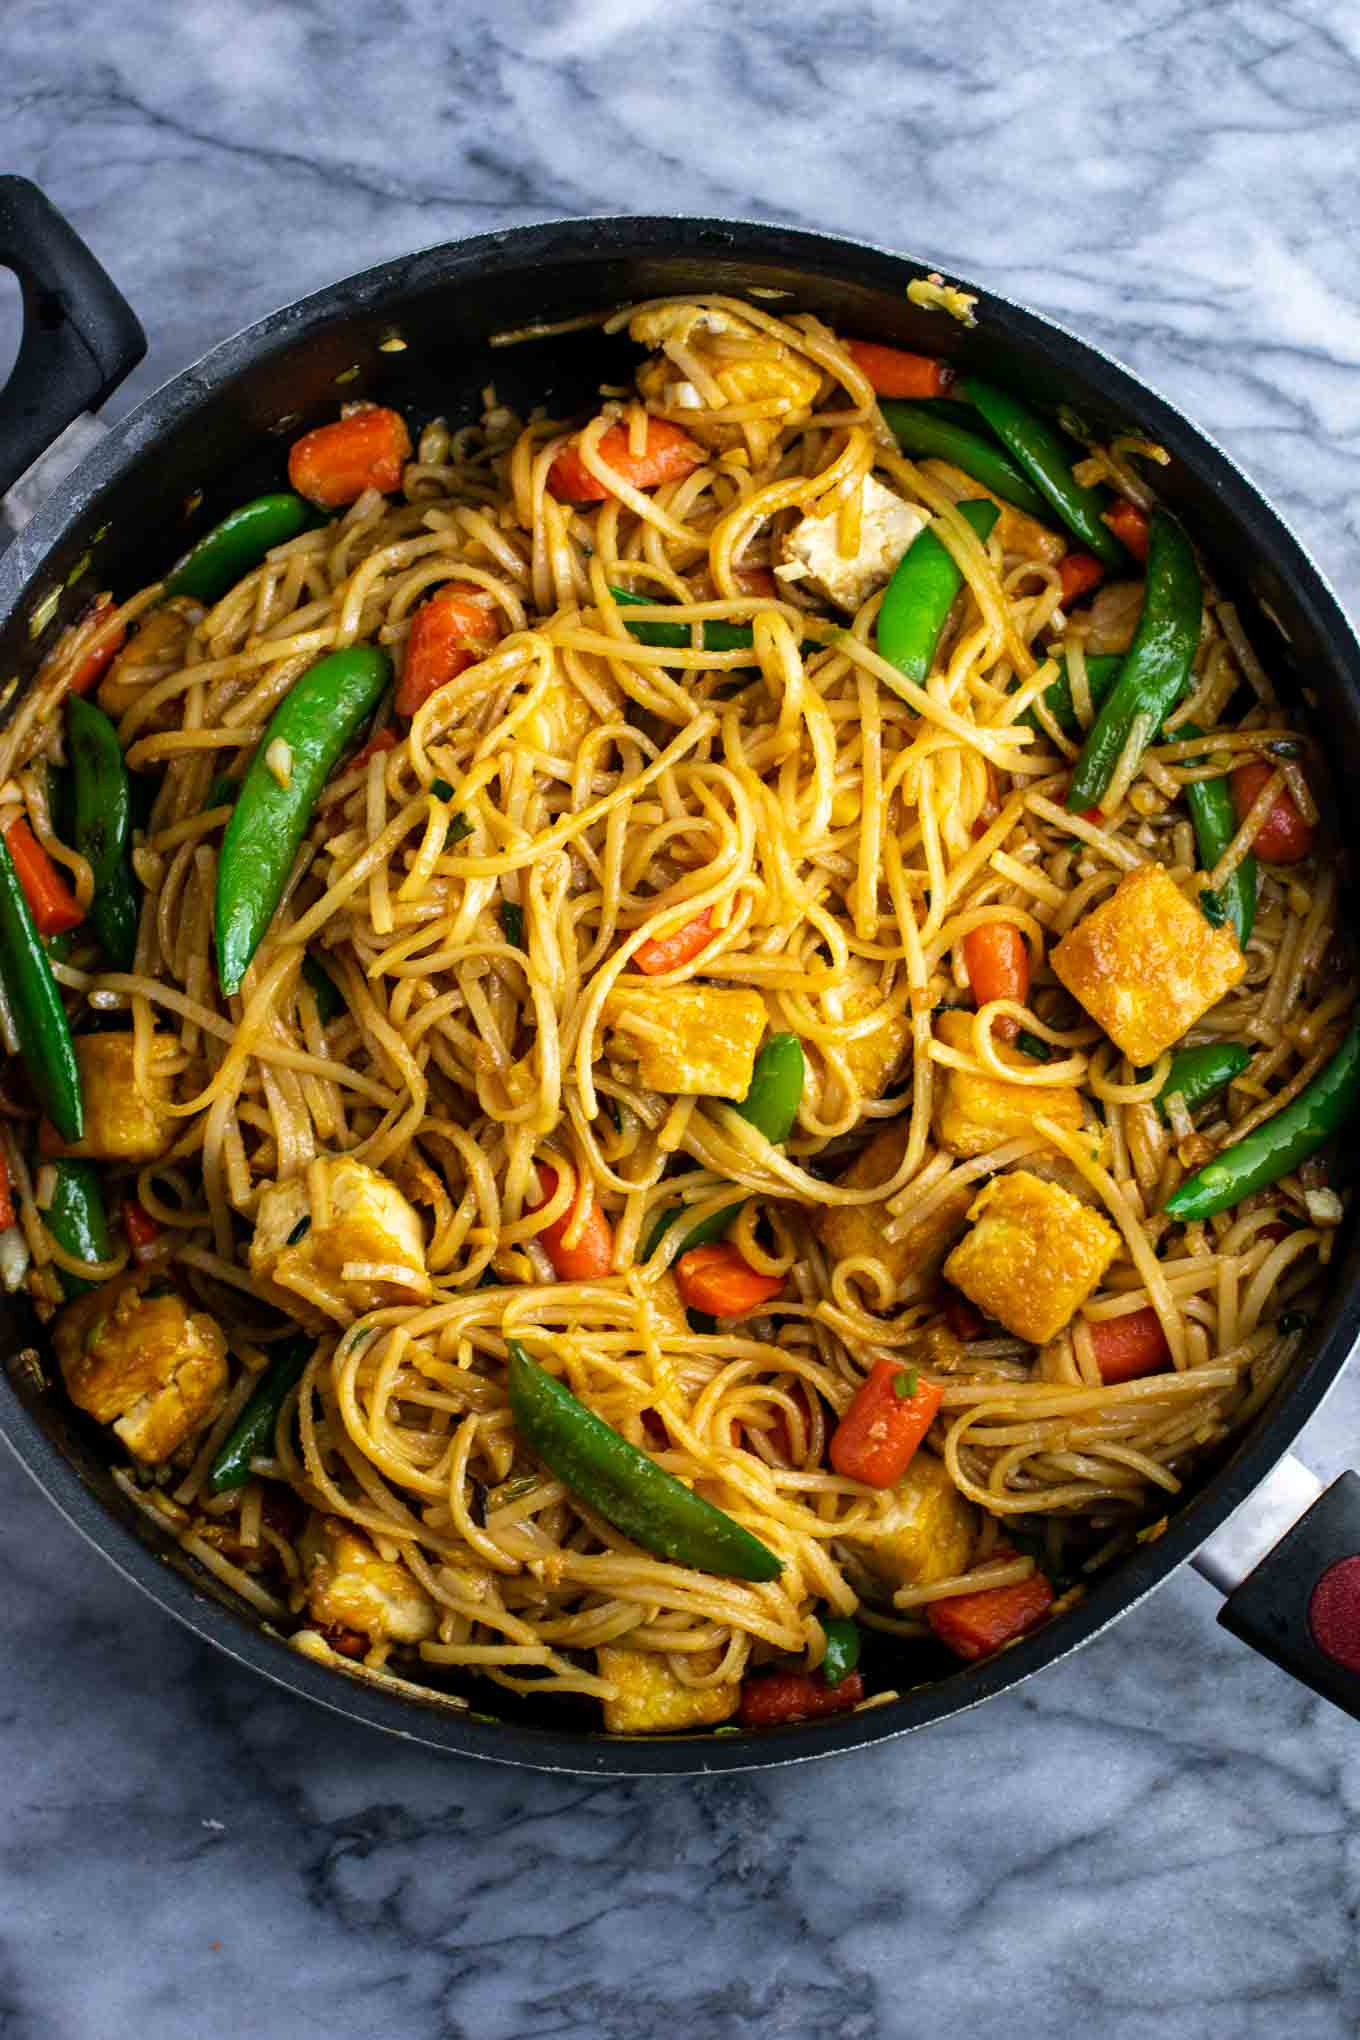 stir fry noodles with homemade stir fry sauce